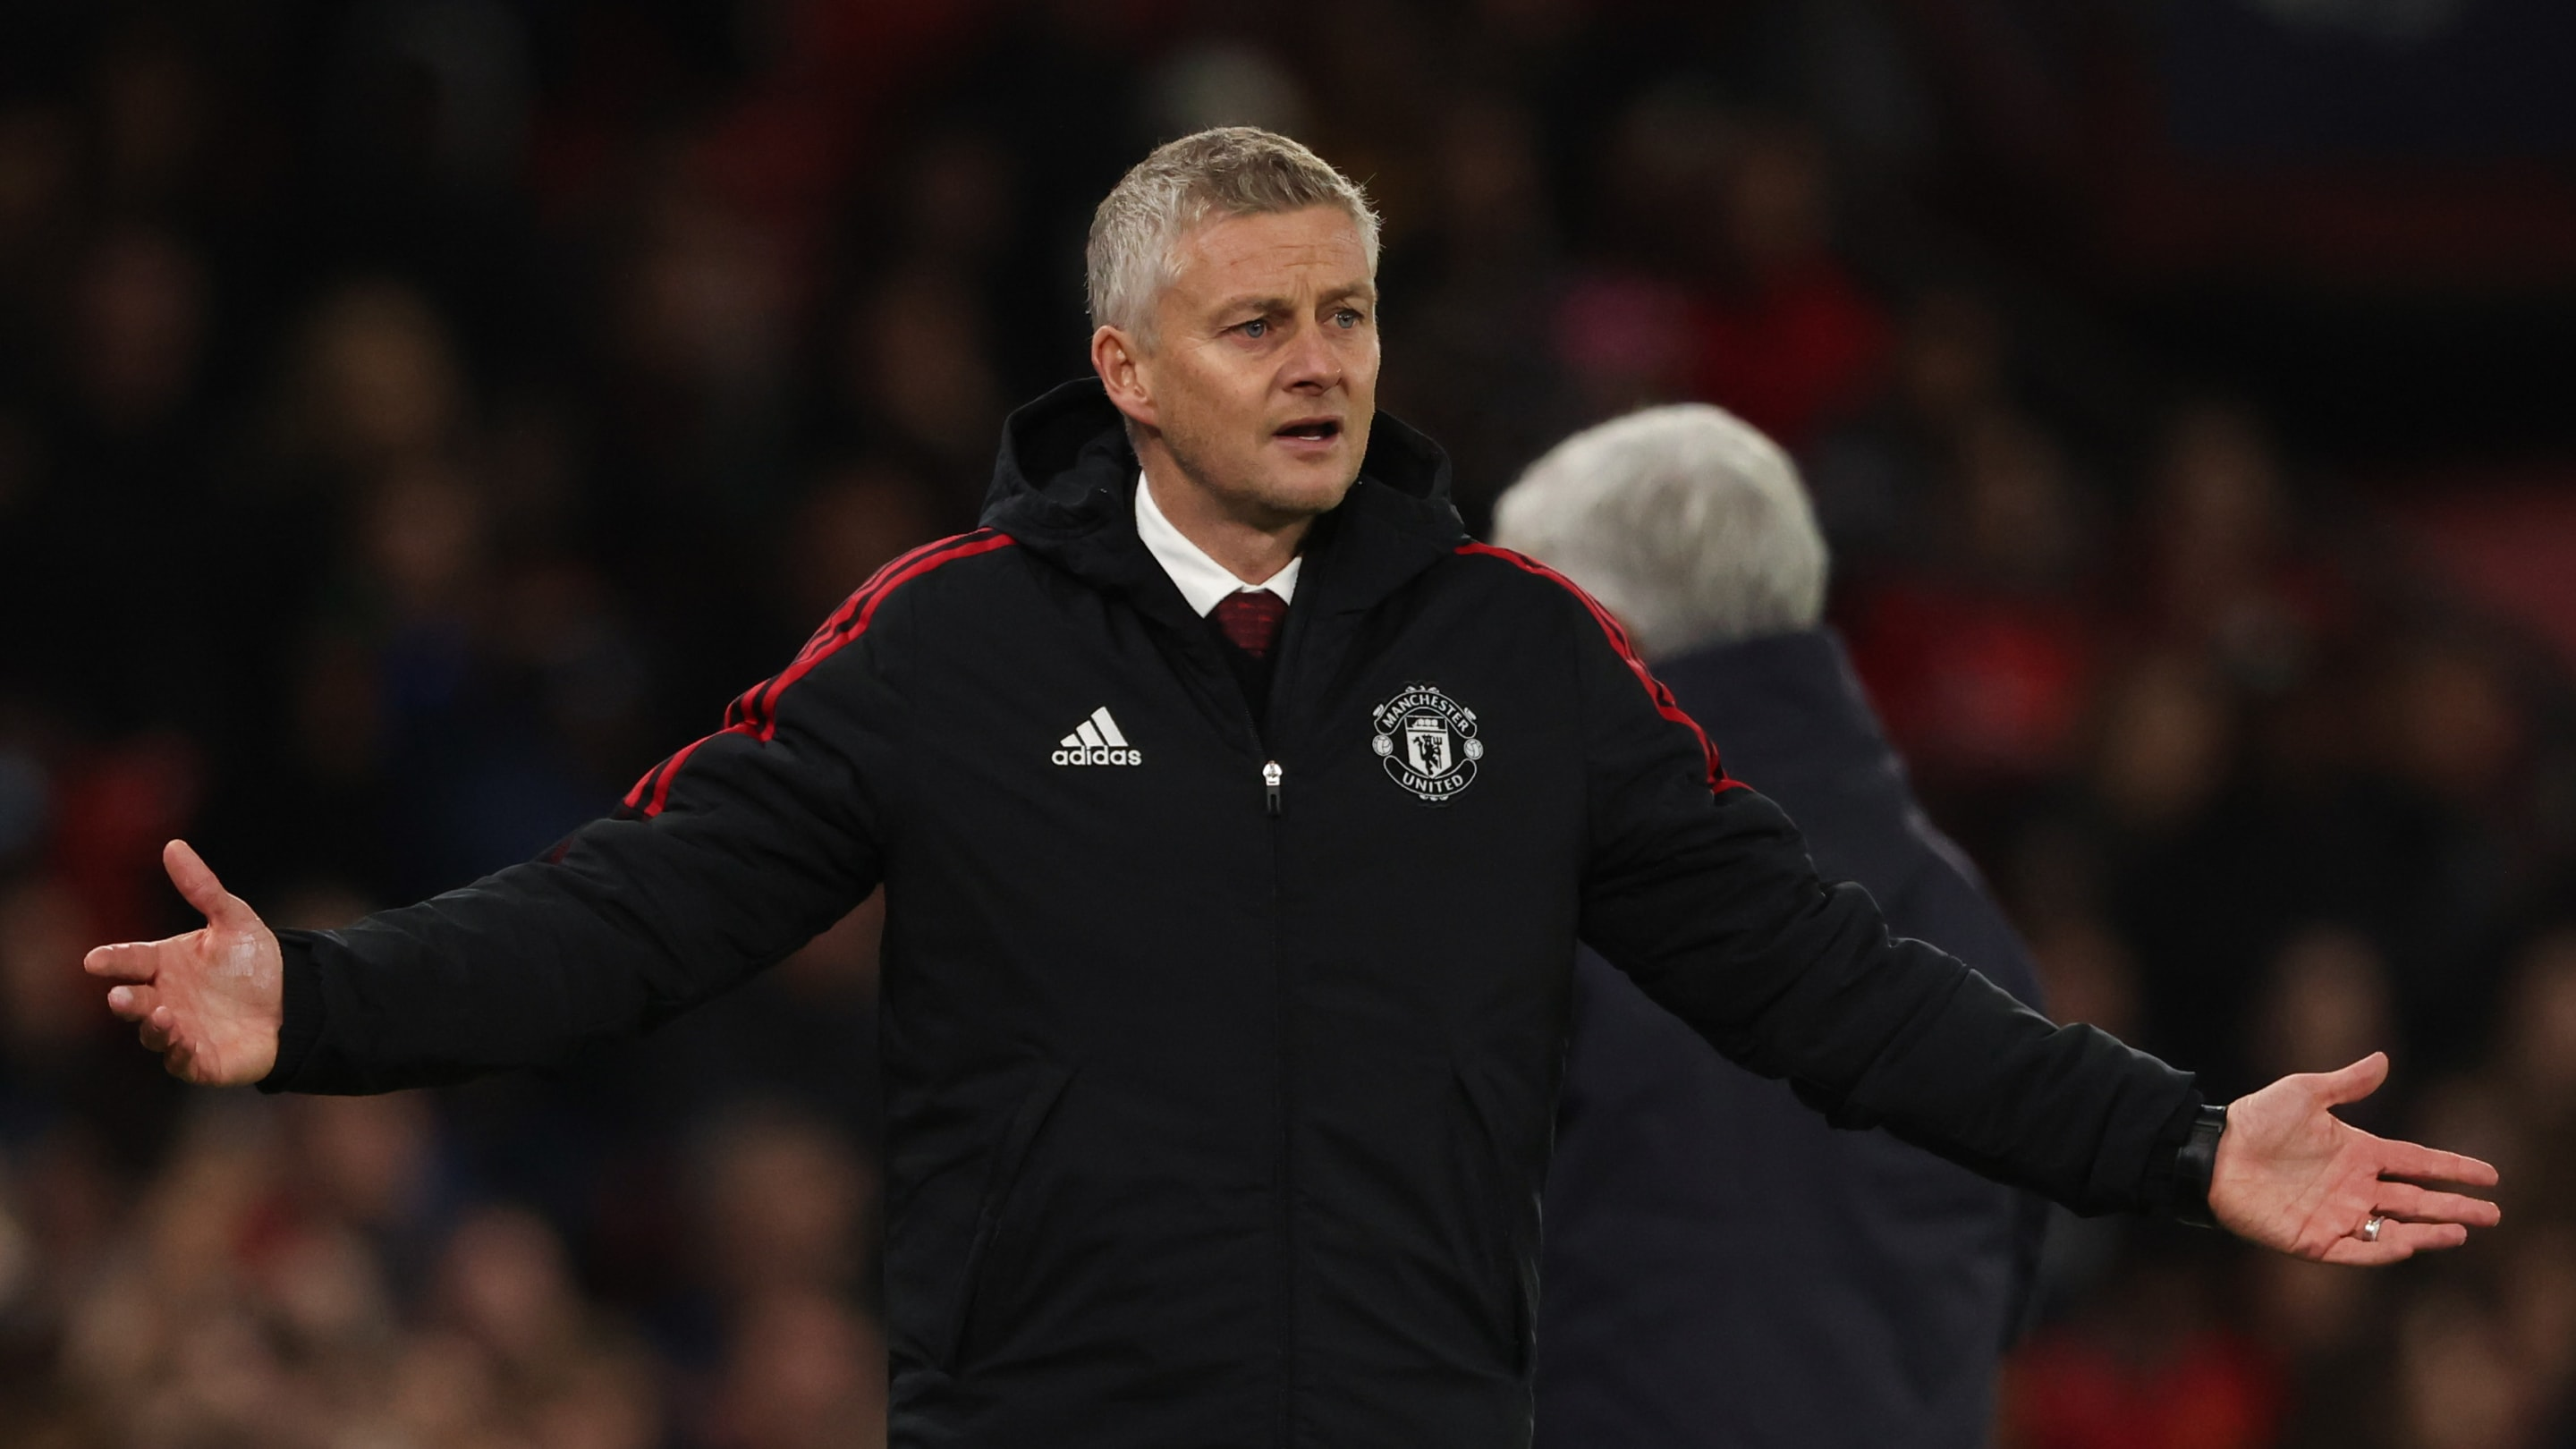 Twitter reacts as Manchester United save Ole Gunnar Solskjaer with comeback win